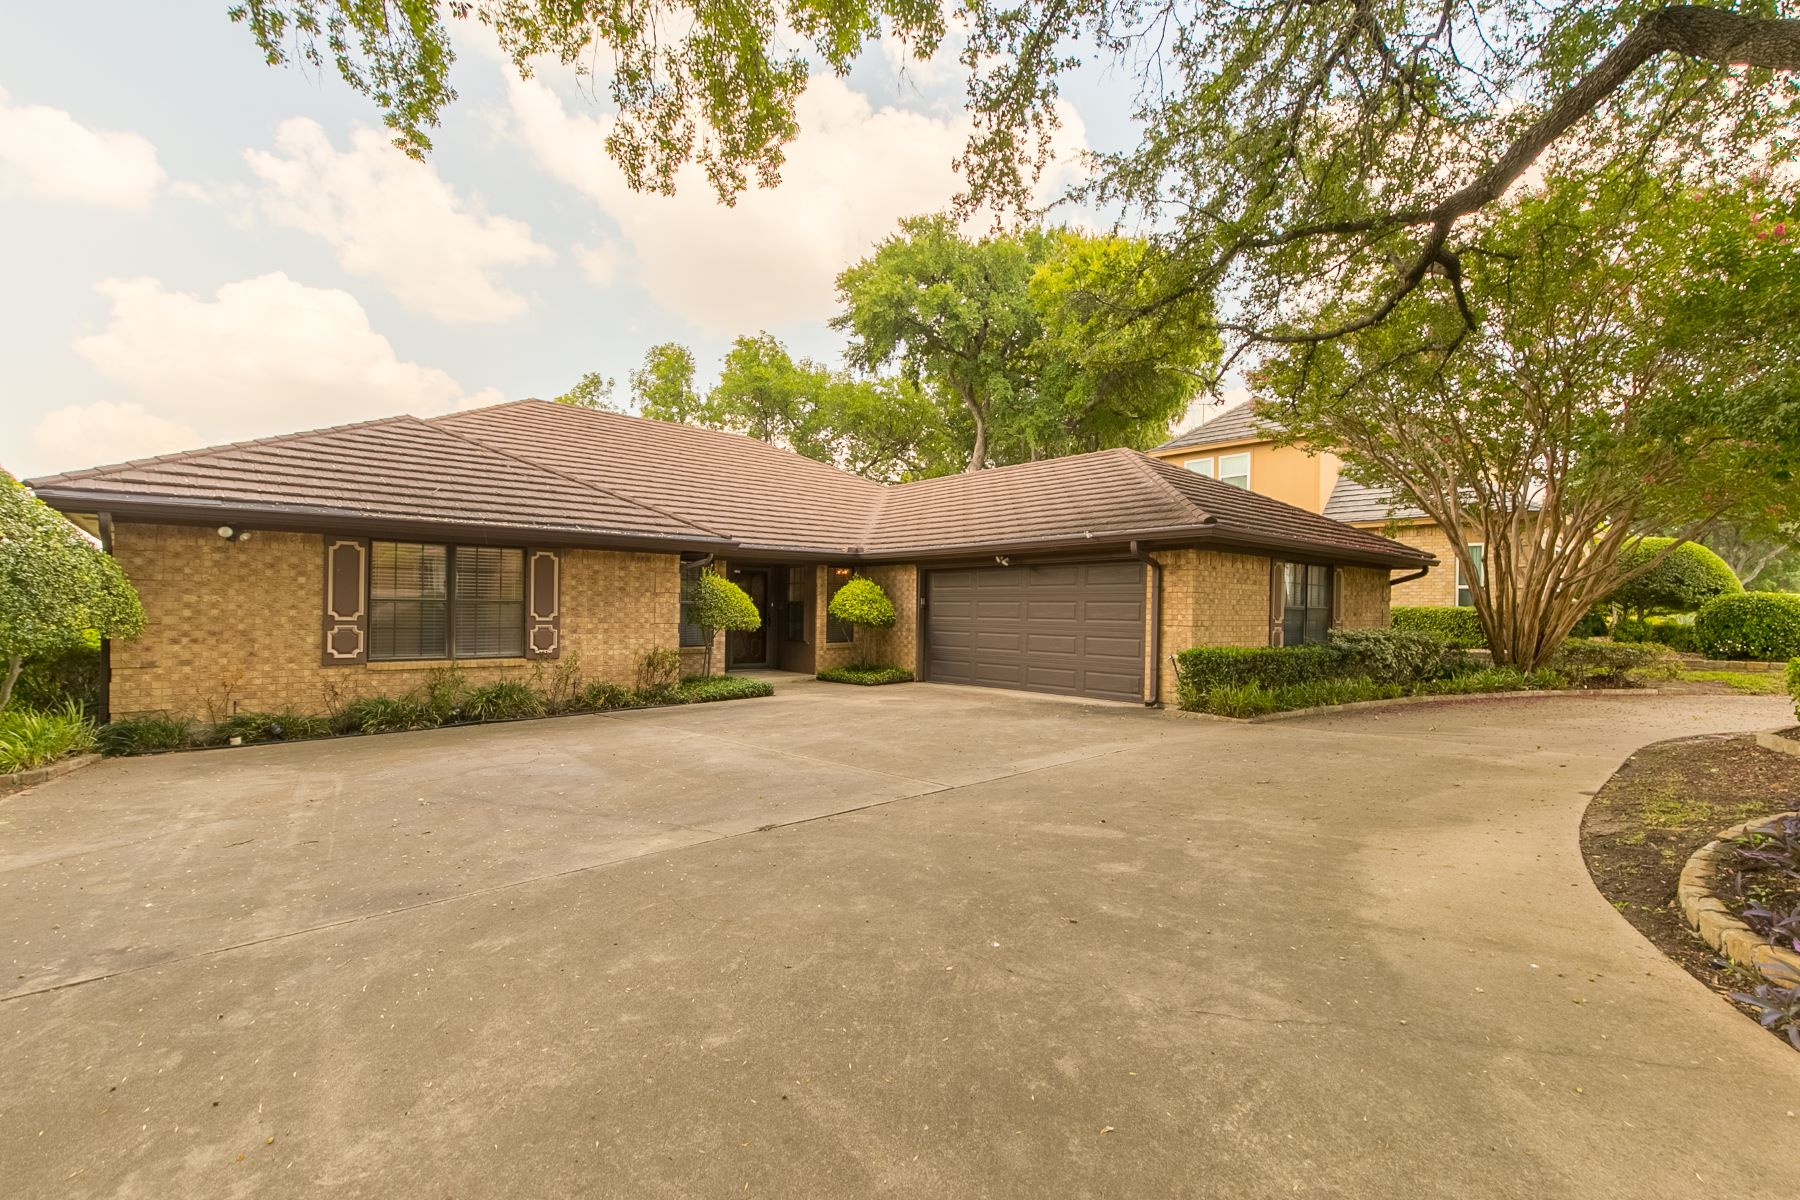 Single Family Homes for Sale at 6309 Riviera Drive North Richland Hills, Texas 76180 United States